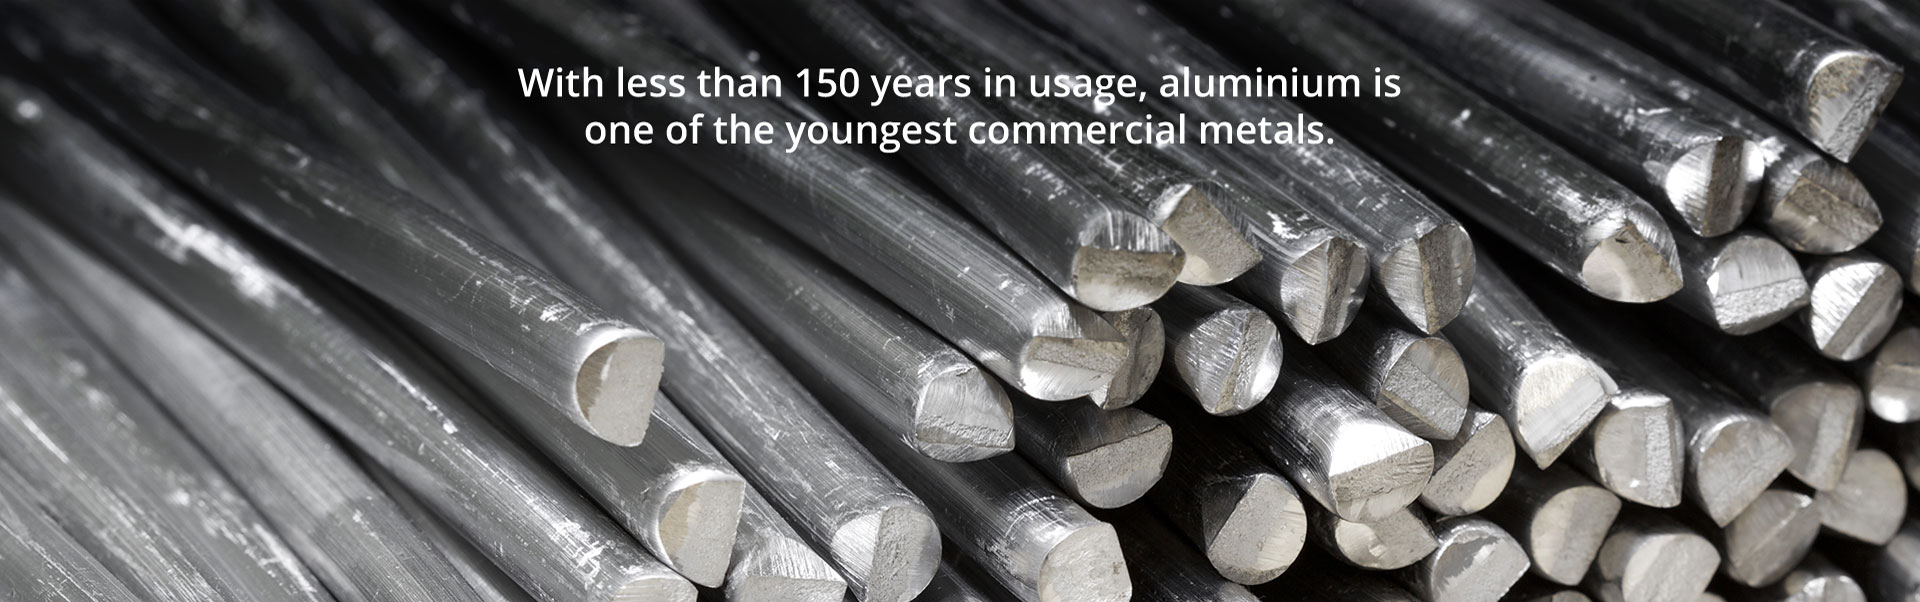 Commercial metal